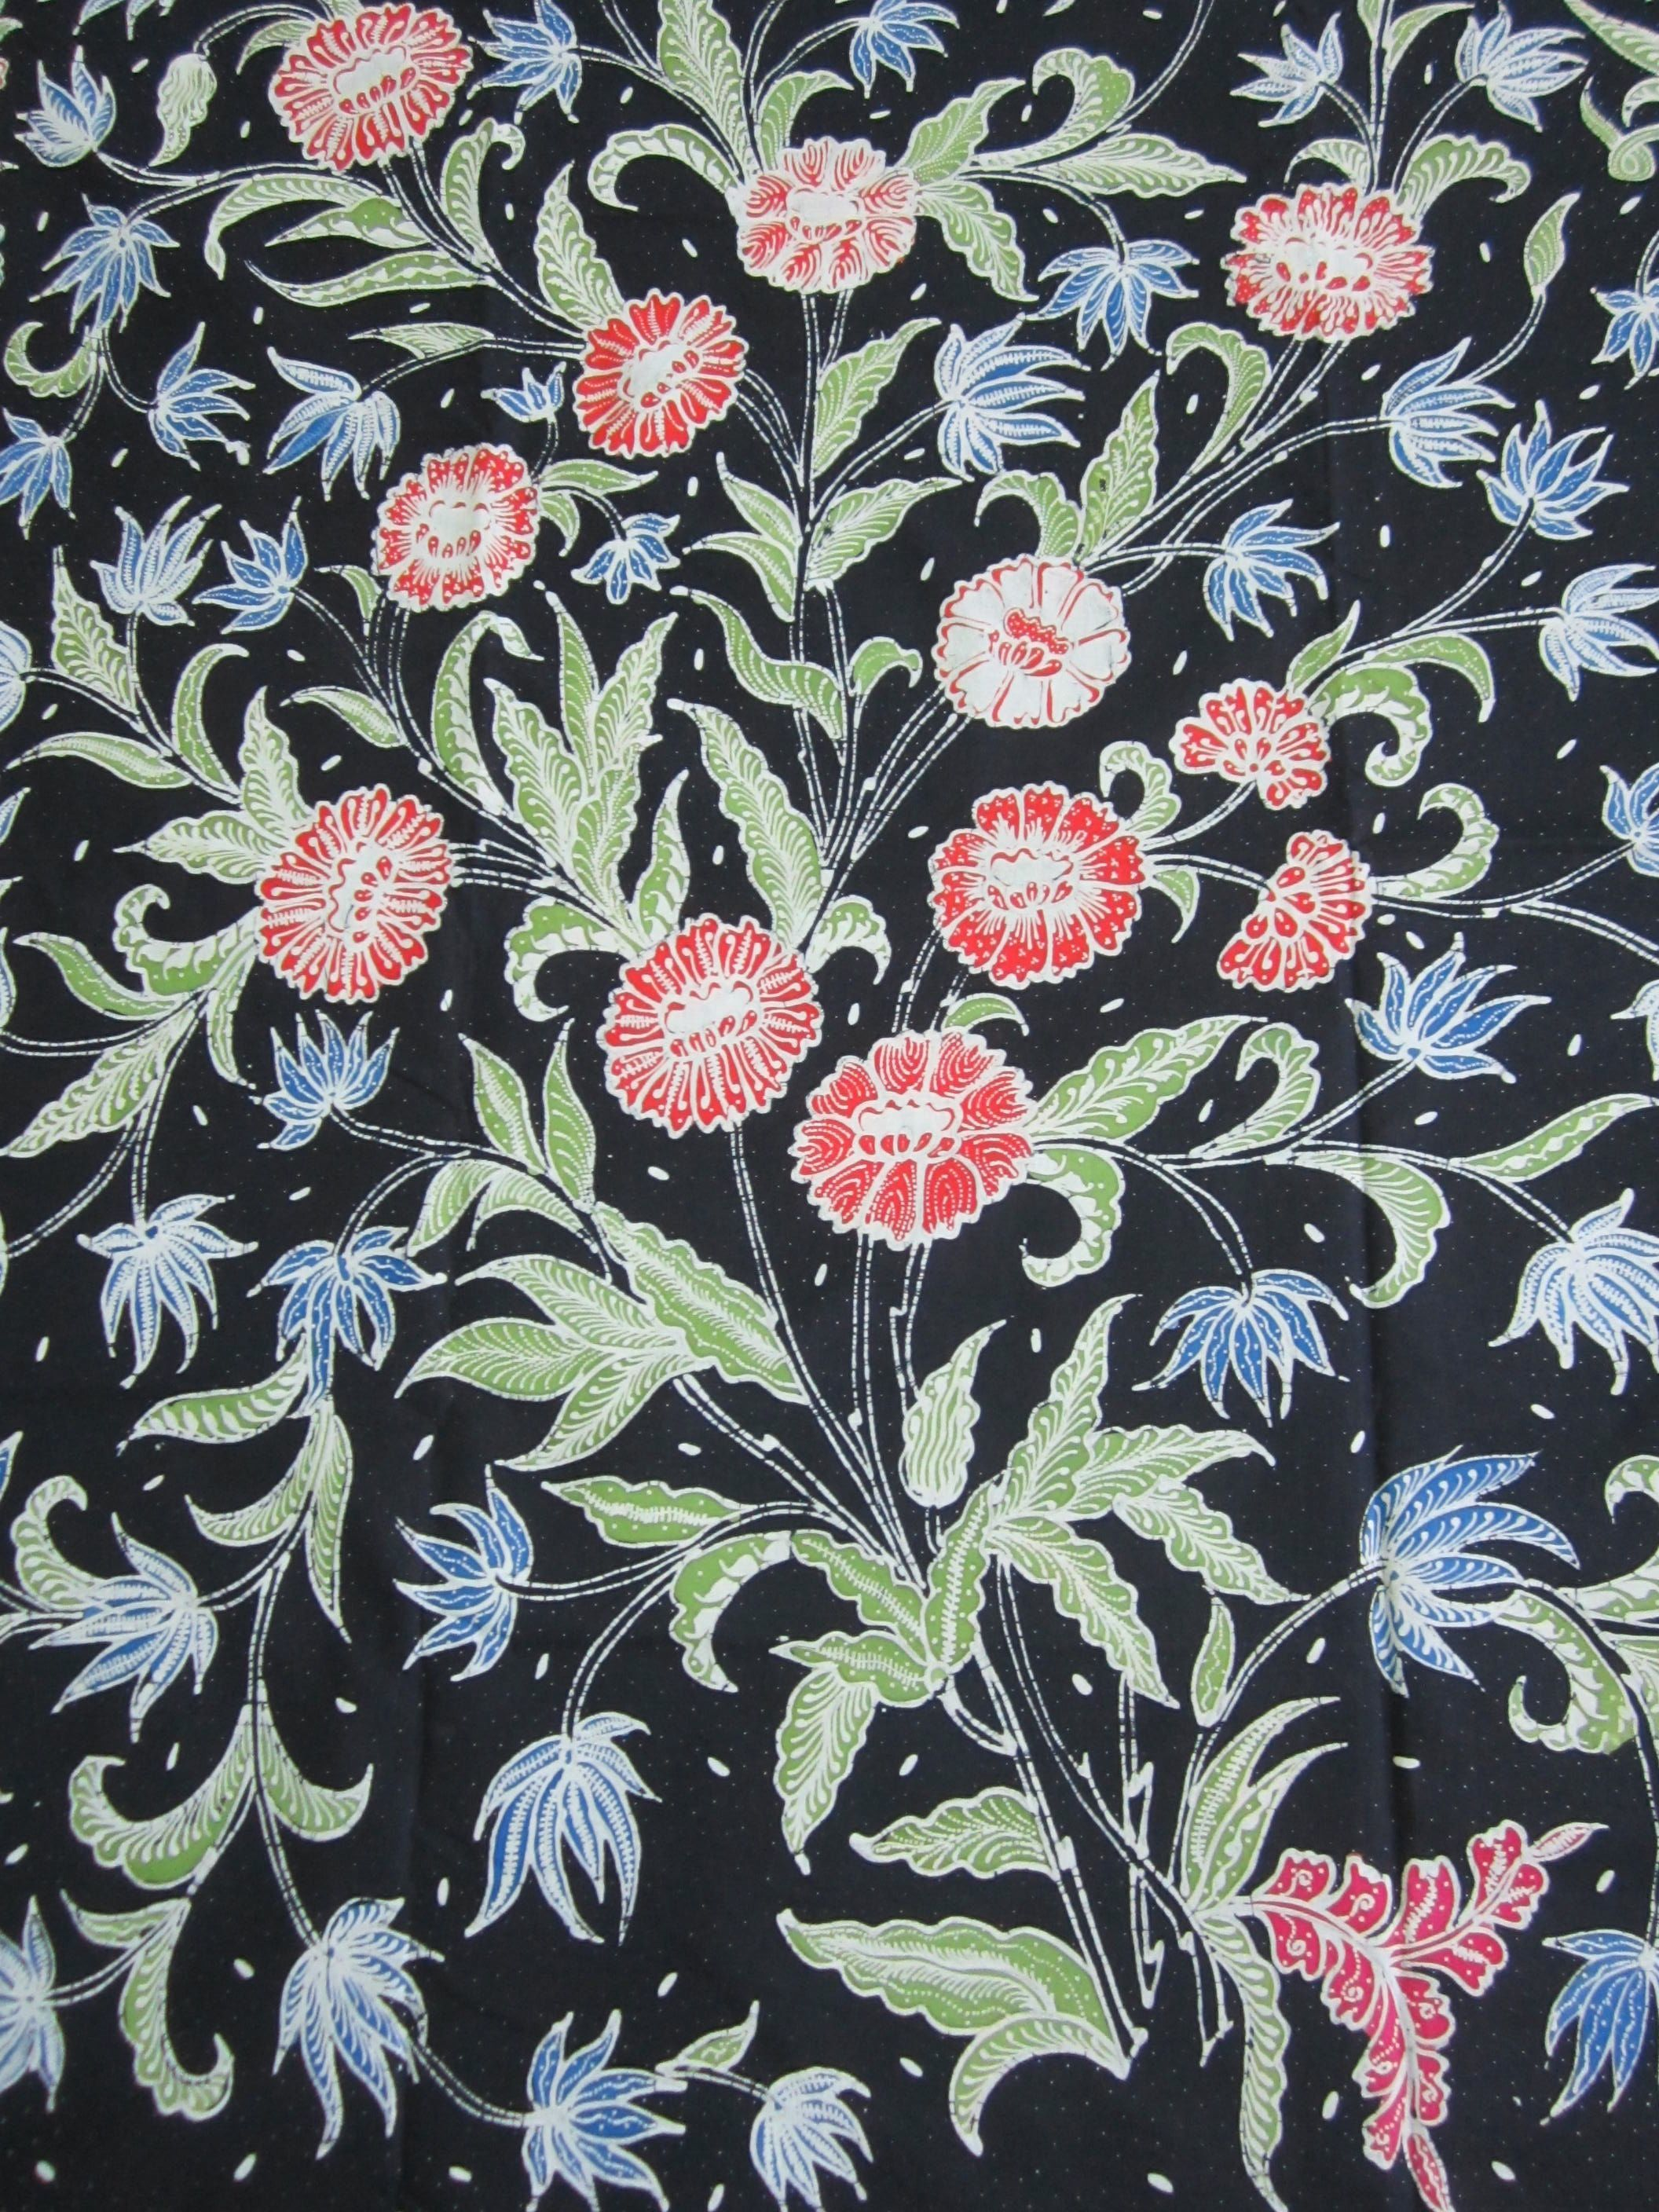 Floral tulis batik on navy blue background from Java Indonesia